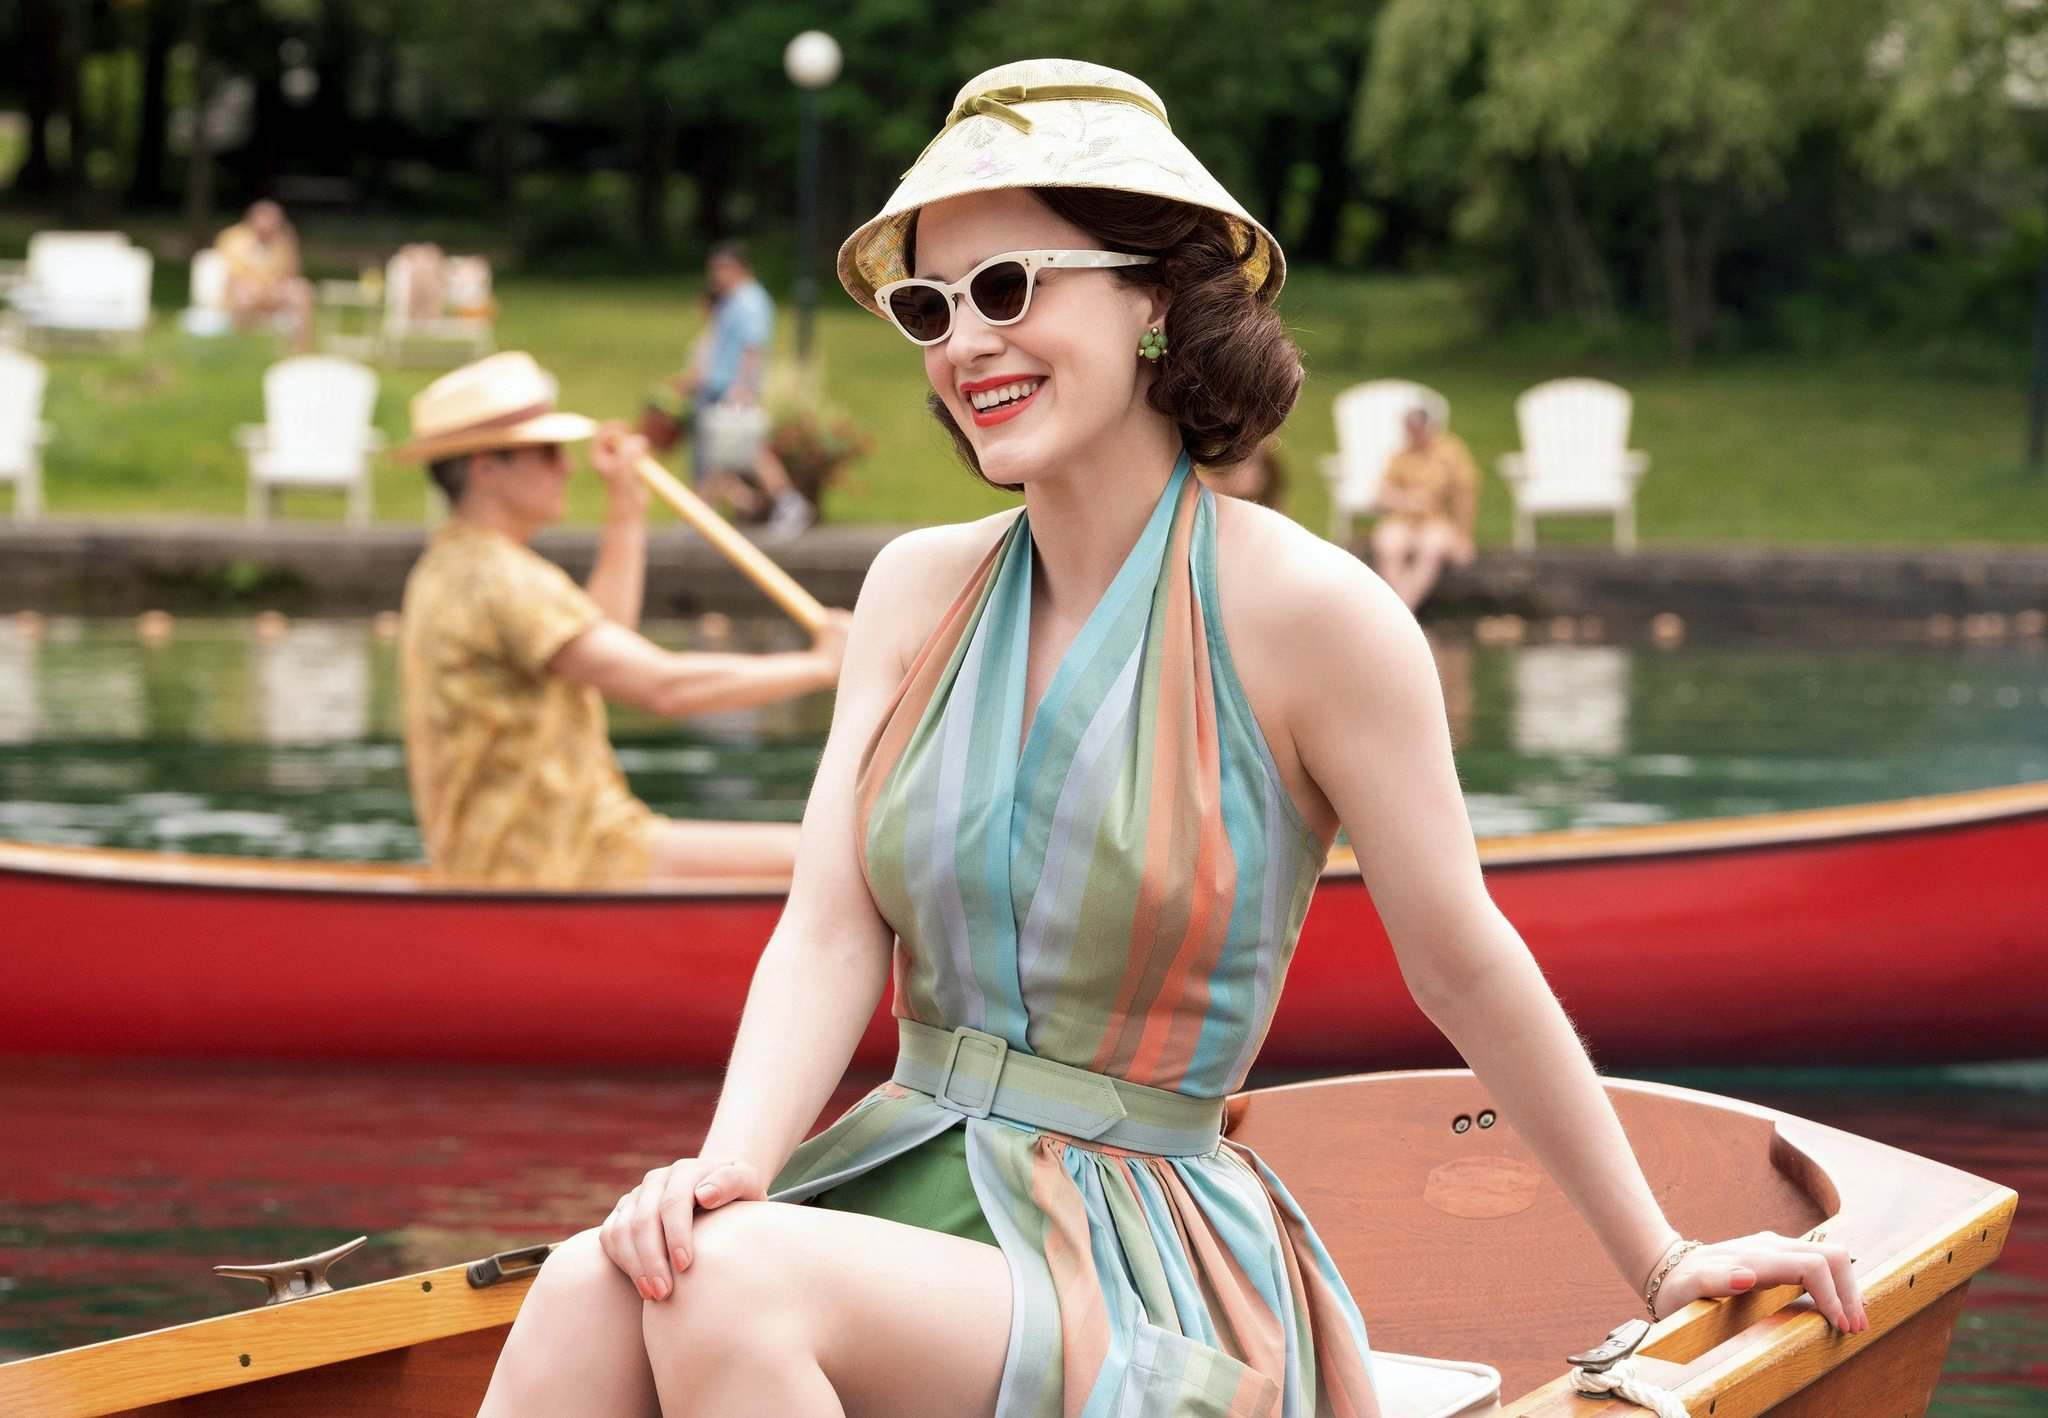 Rachel Brosnahan won an Emmy for her role in The Marvelous Mrs. Maisel. (Nicole Rivelli / Amazon)